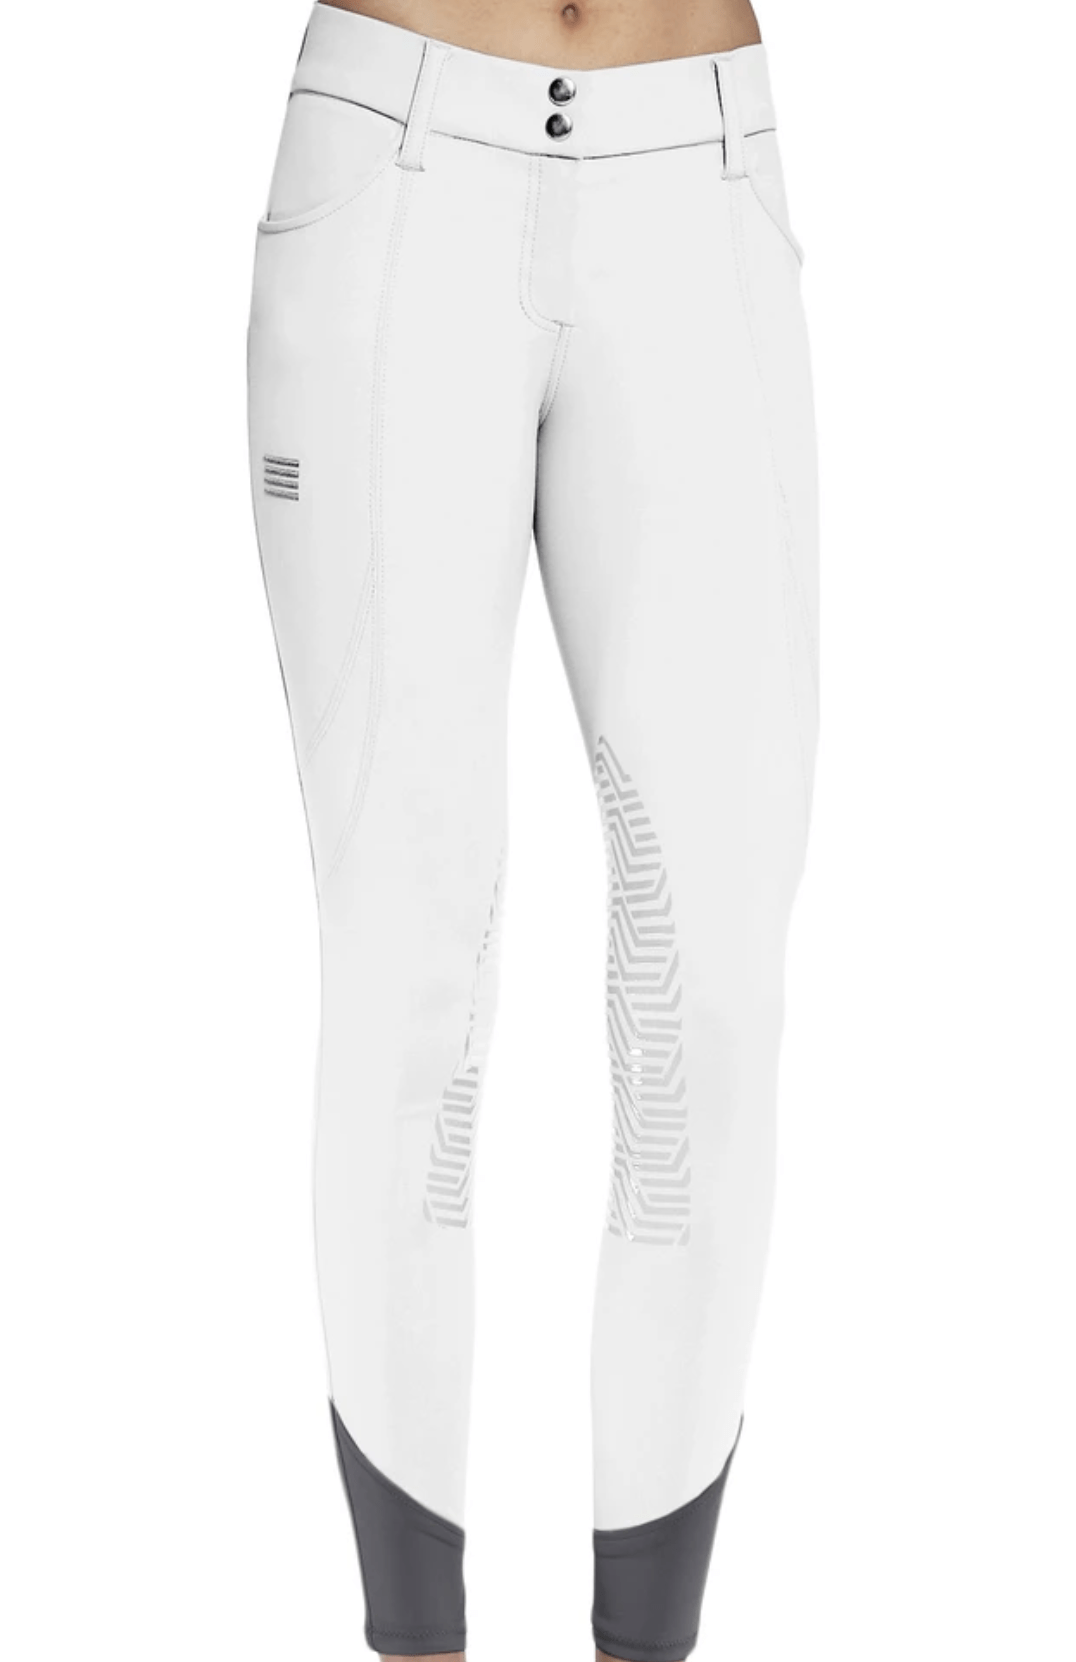 GhoDho Breeches GhoDho Tinley Pro White Breeches equestrian team apparel online tack store mobile tack store custom farm apparel custom show stable clothing equestrian lifestyle horse show clothing riding clothes horses equestrian tack store